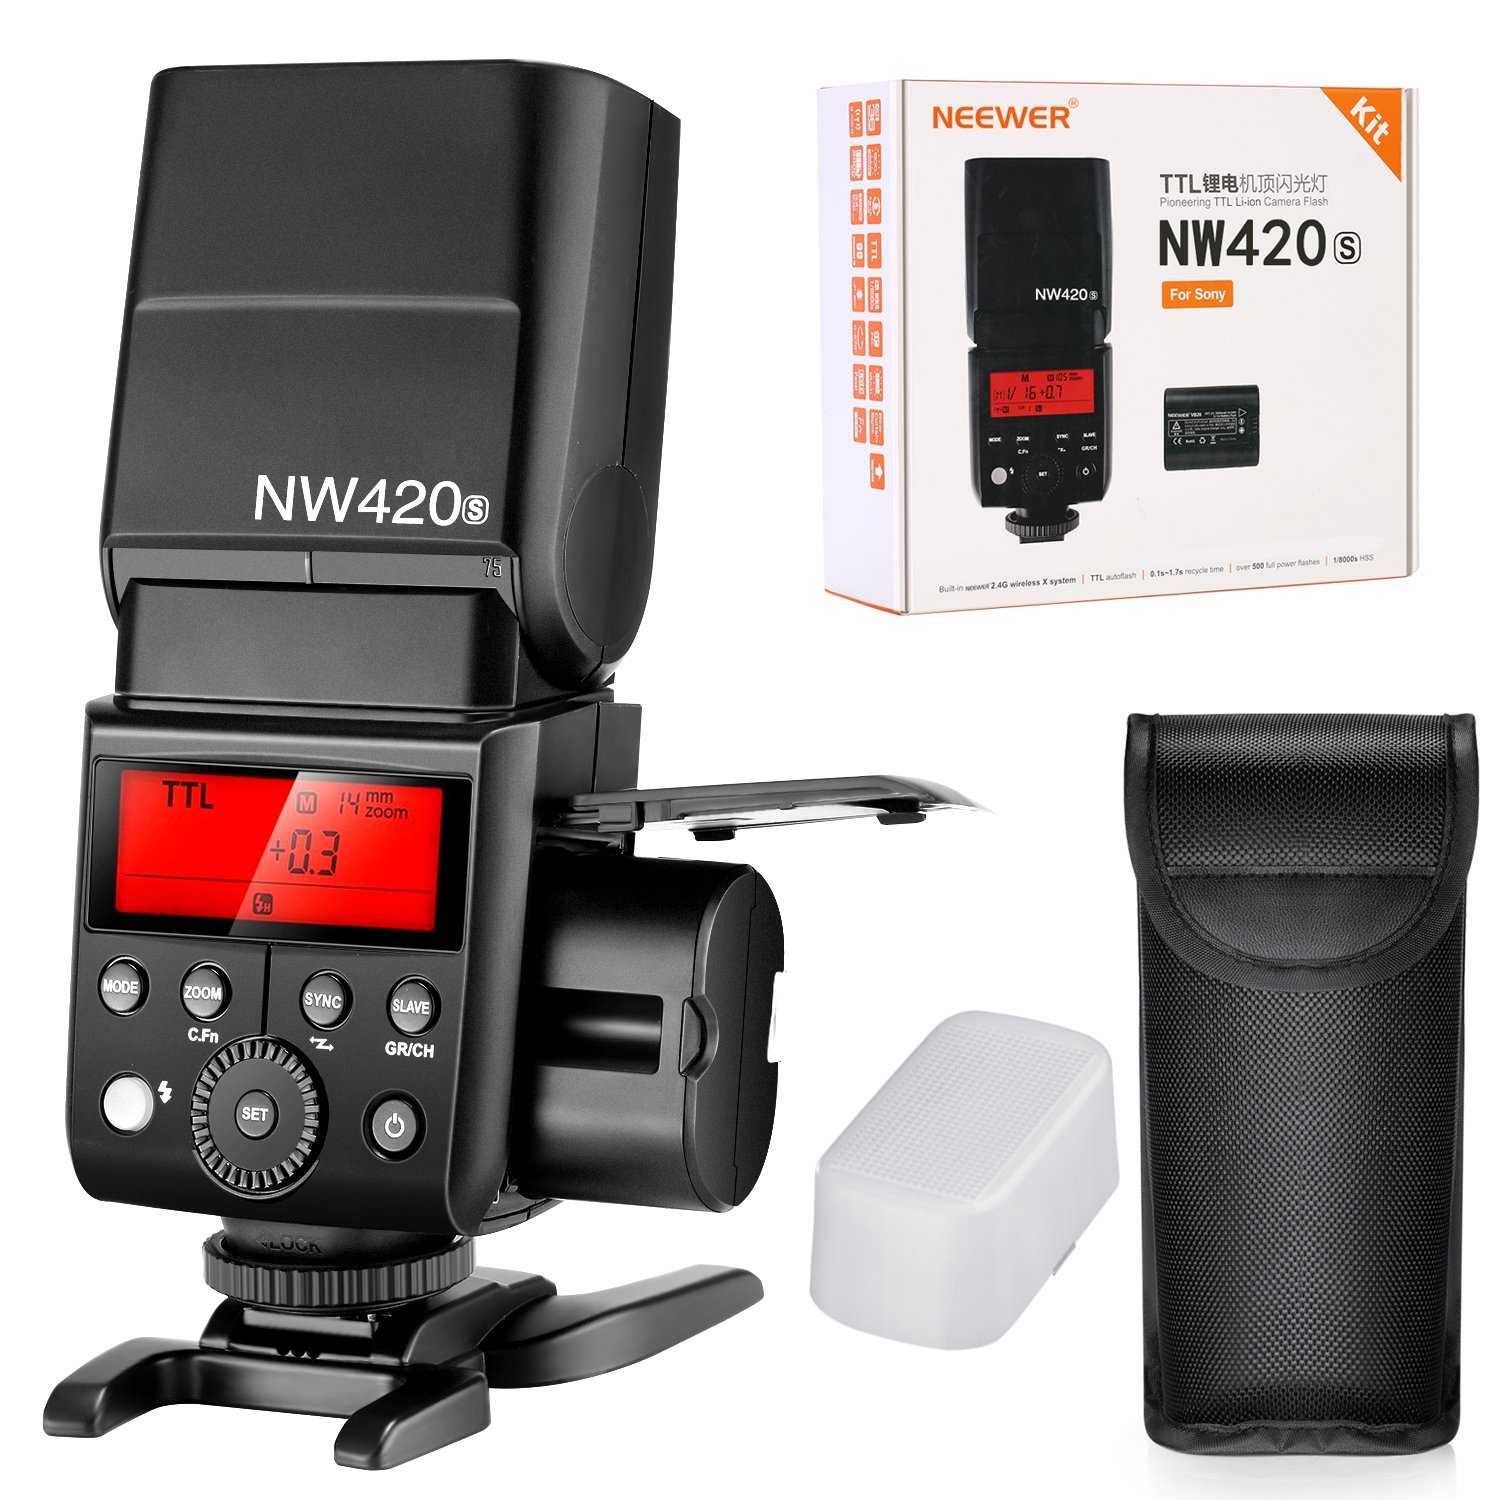 Neewer 2.4G HSS 1/8000s TTL GN36 Wireless Master Slave Flash Speedlite With 2000mAh Li-ion Rechargeable Battery 500 Full Power Flashs for Sony A9 A7RIII A7RII A7R A6000 A58 A99 A77II Cameras(NW420S)